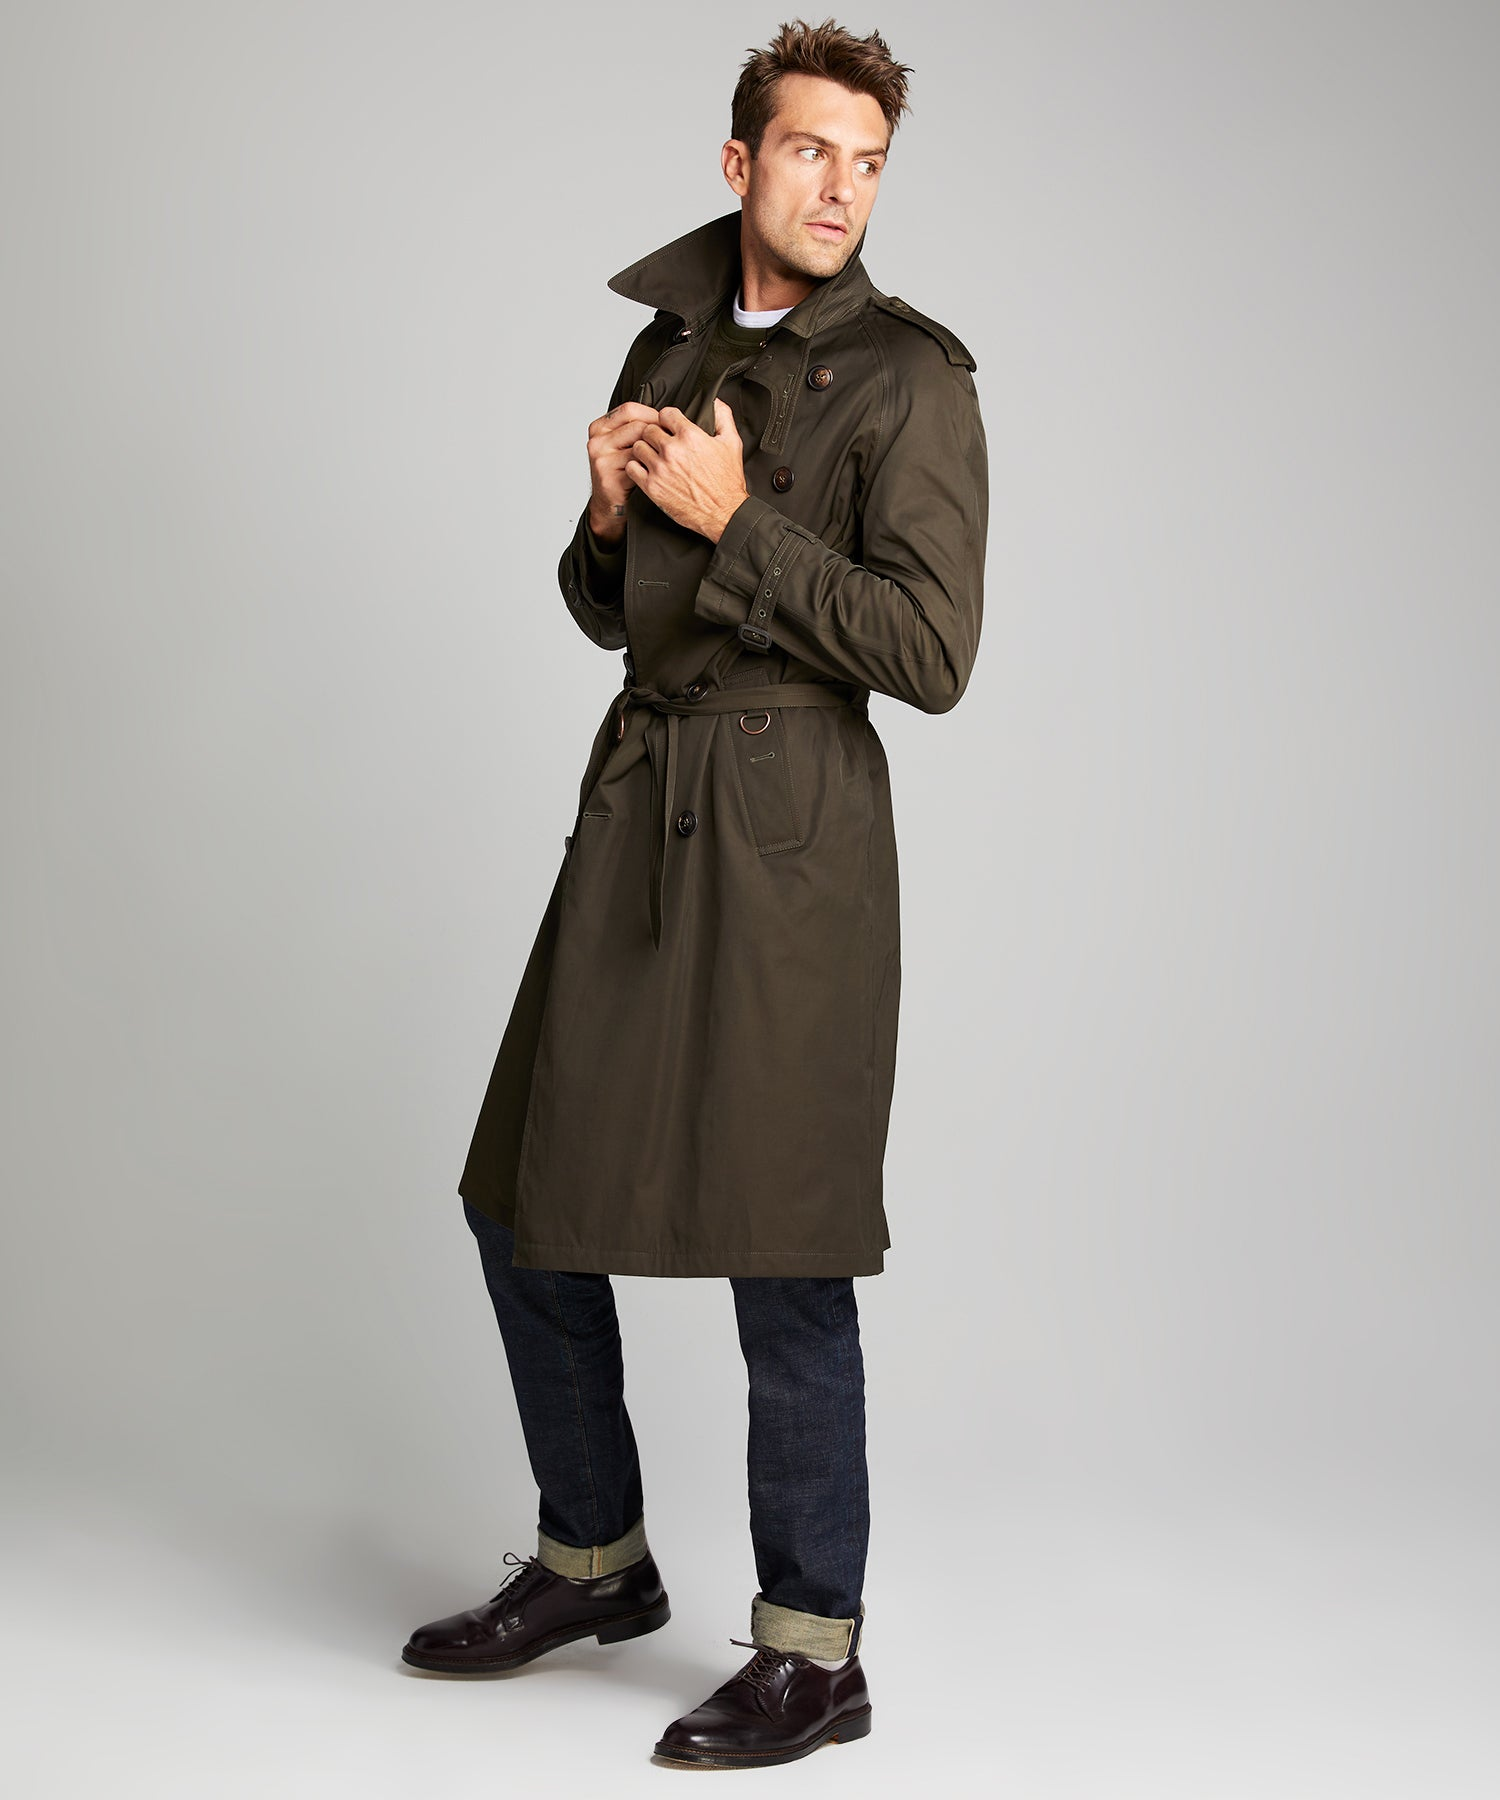 Todd Snyder + Private White Trench Coat in Olive